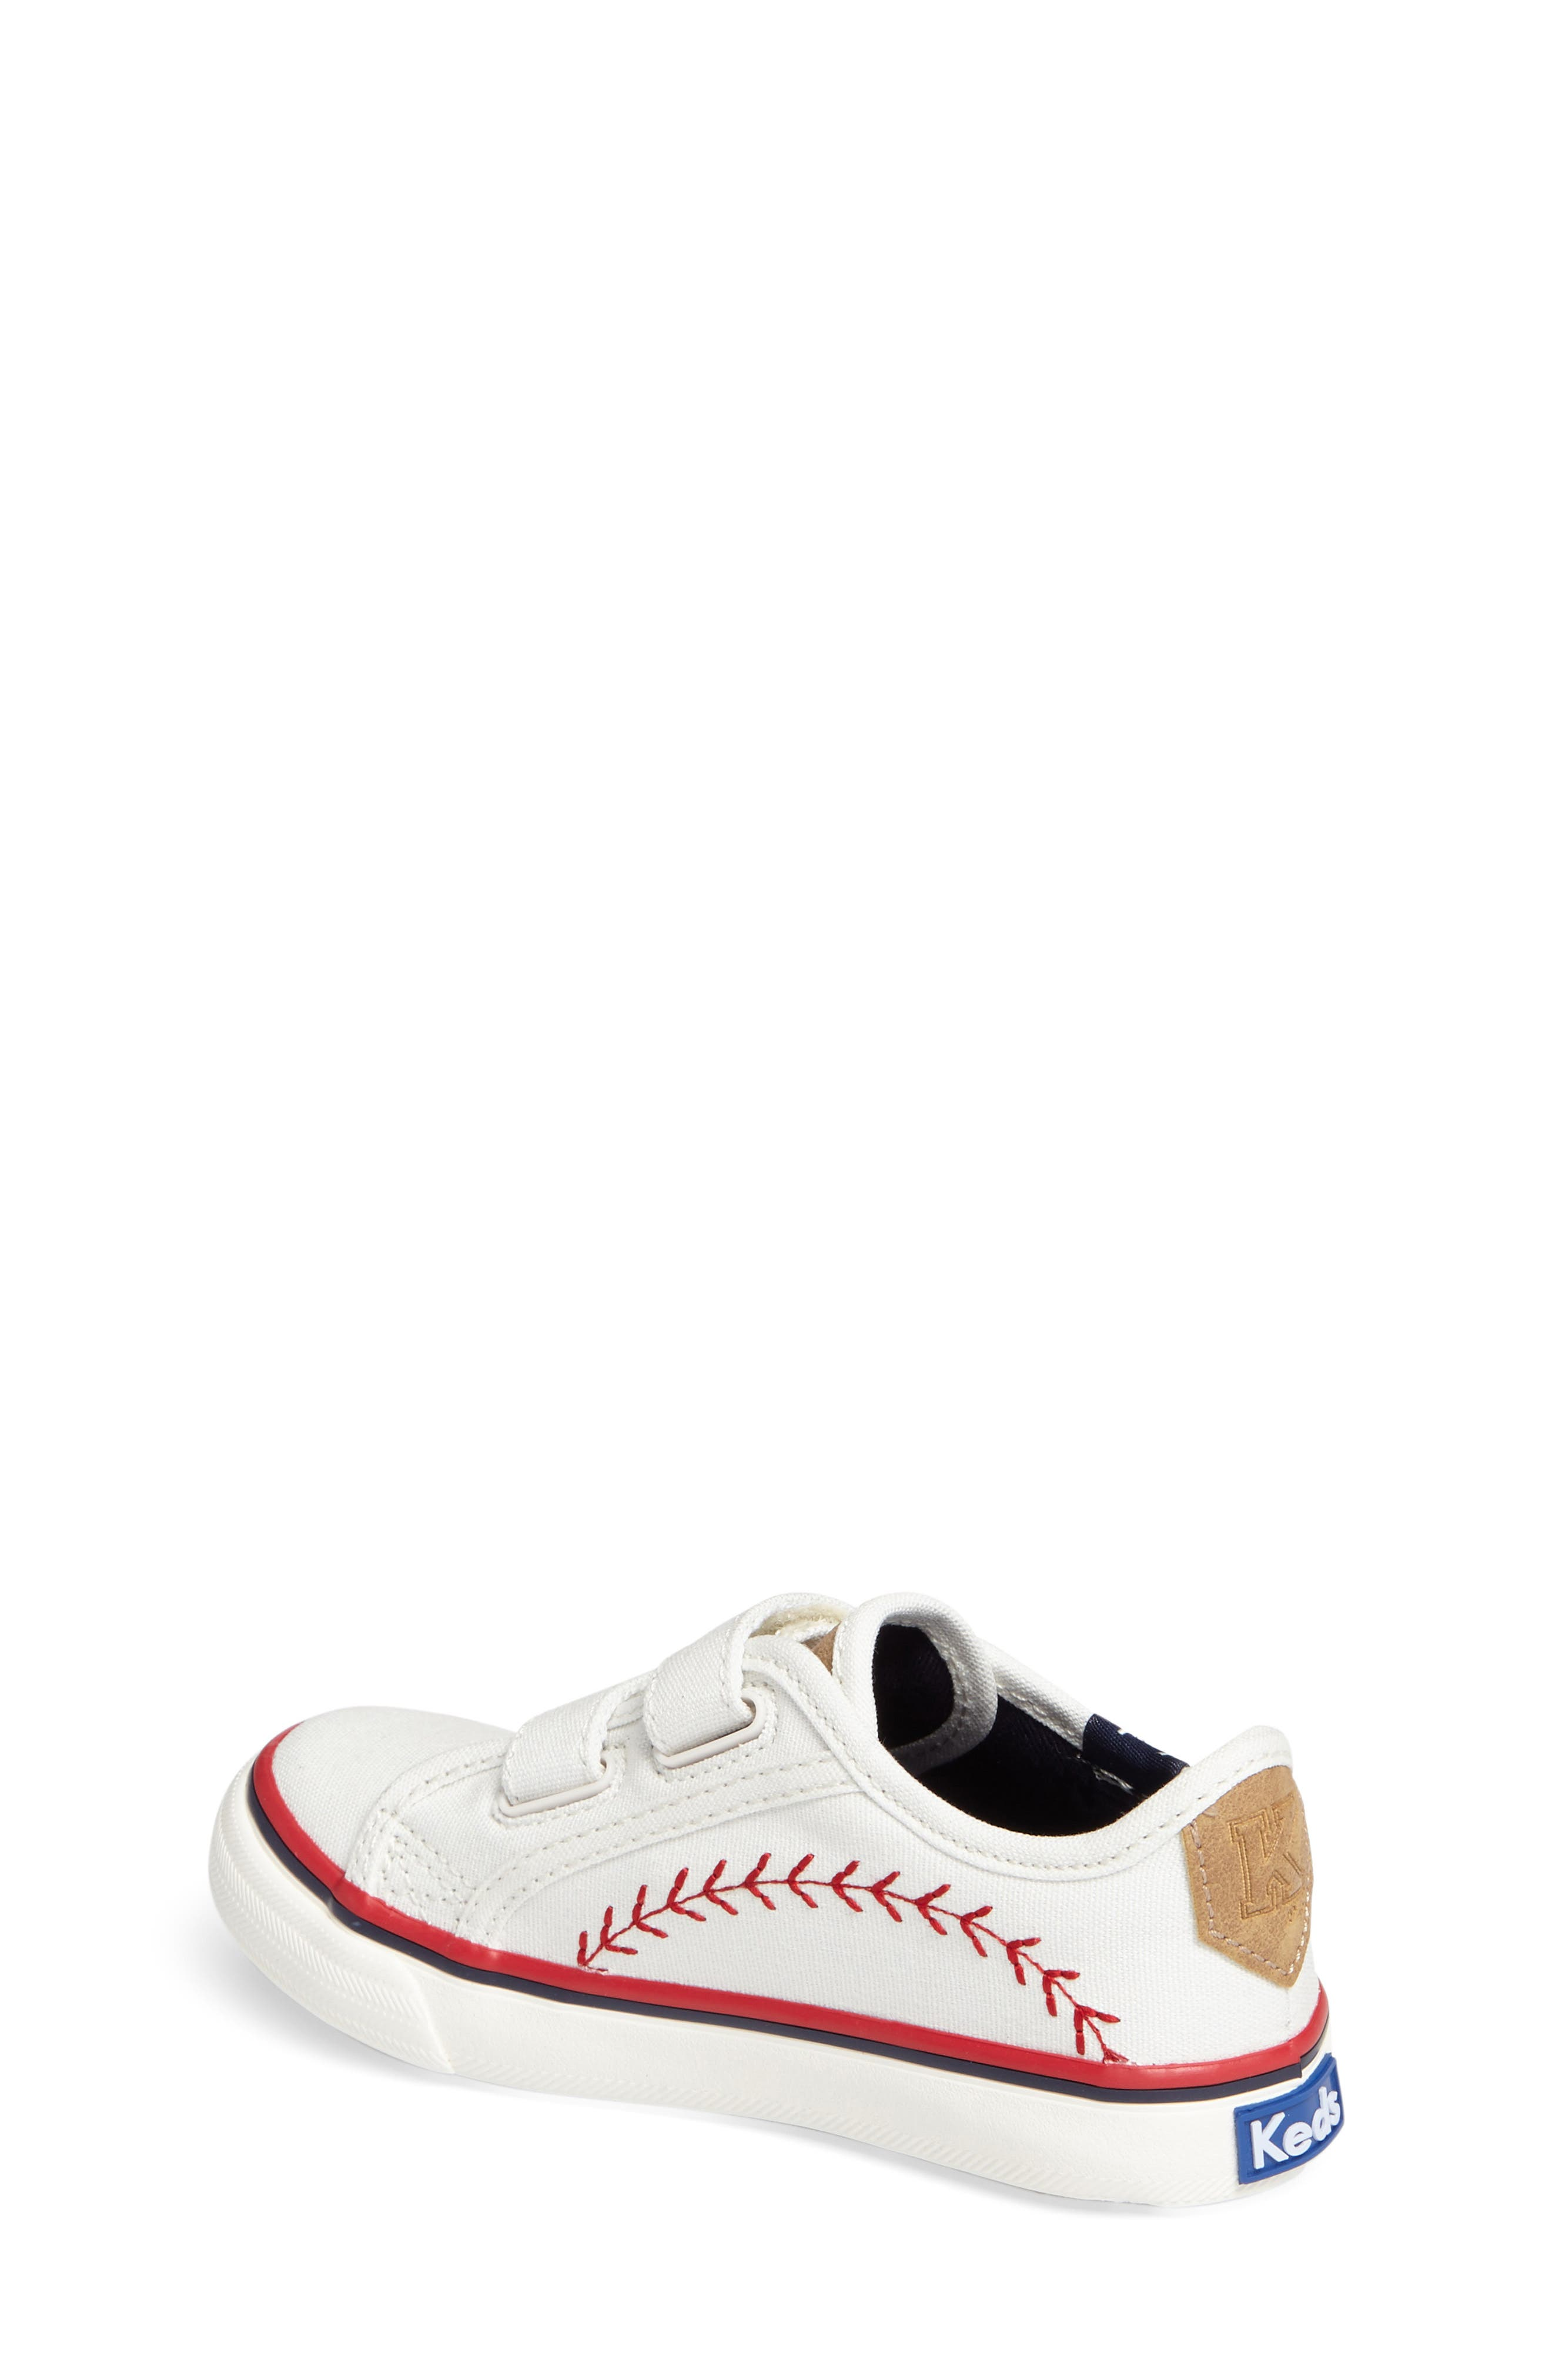 Pennant Double Up Sneaker,                             Alternate thumbnail 2, color,                             160